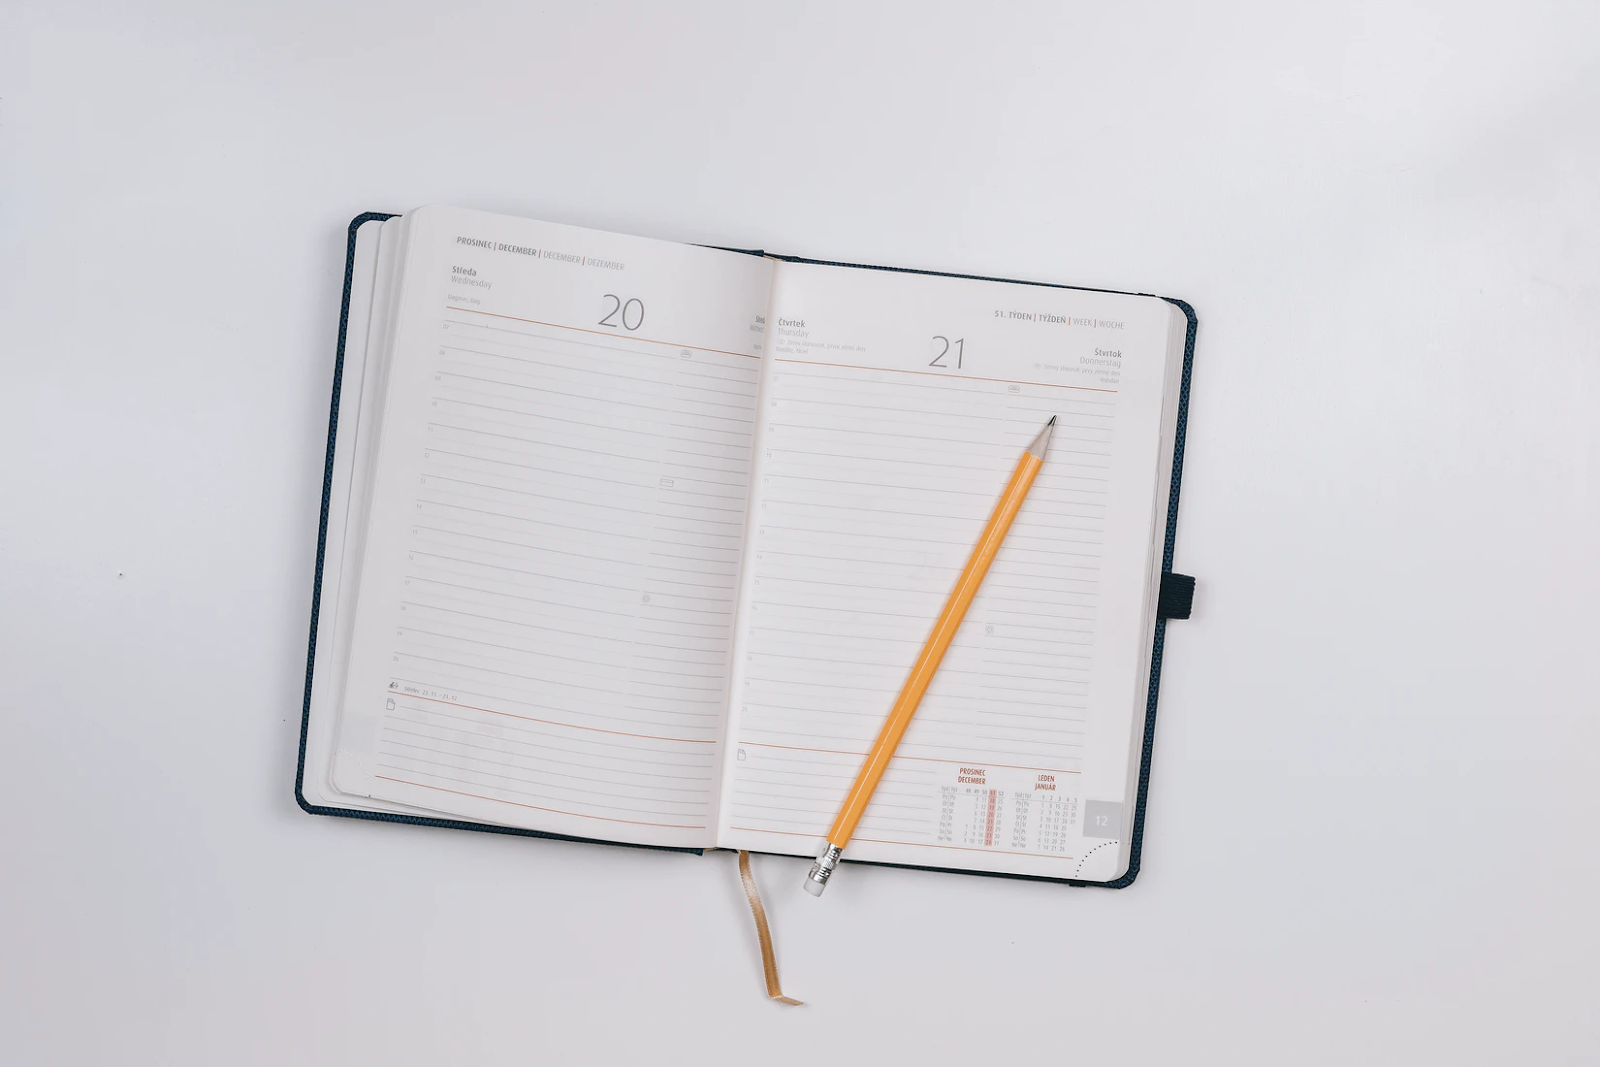 Planner laying flat on a desk